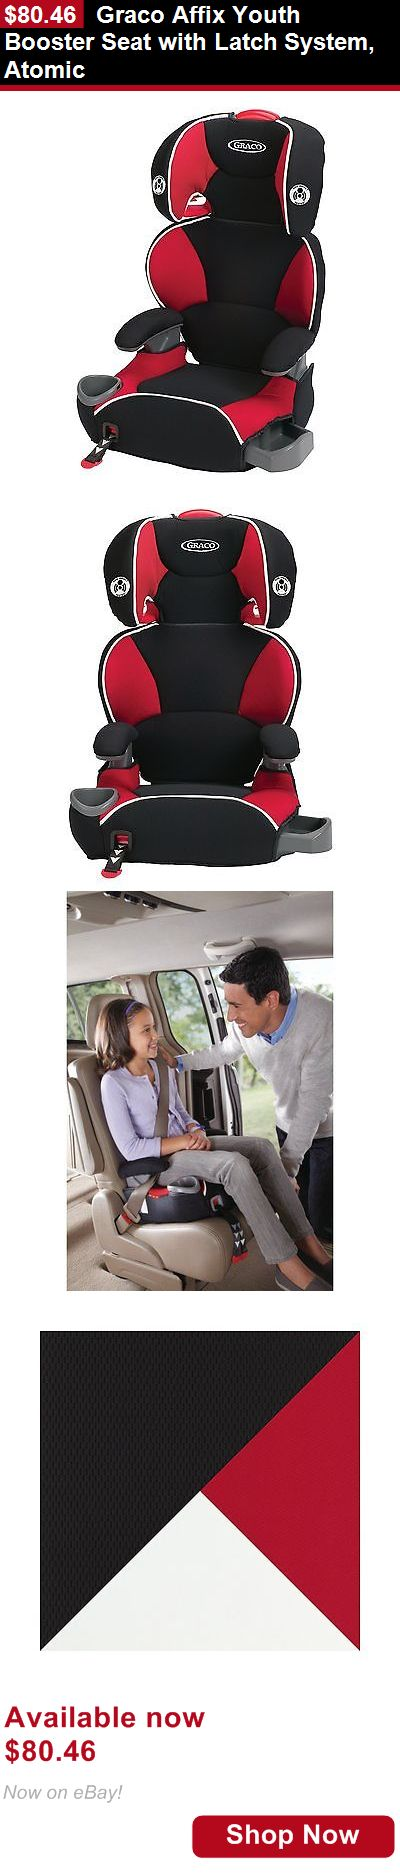 Booster Seats: Graco Affix Youth Booster Seat With Latch System, Atomic BUY IT NOW ONLY: $80.46